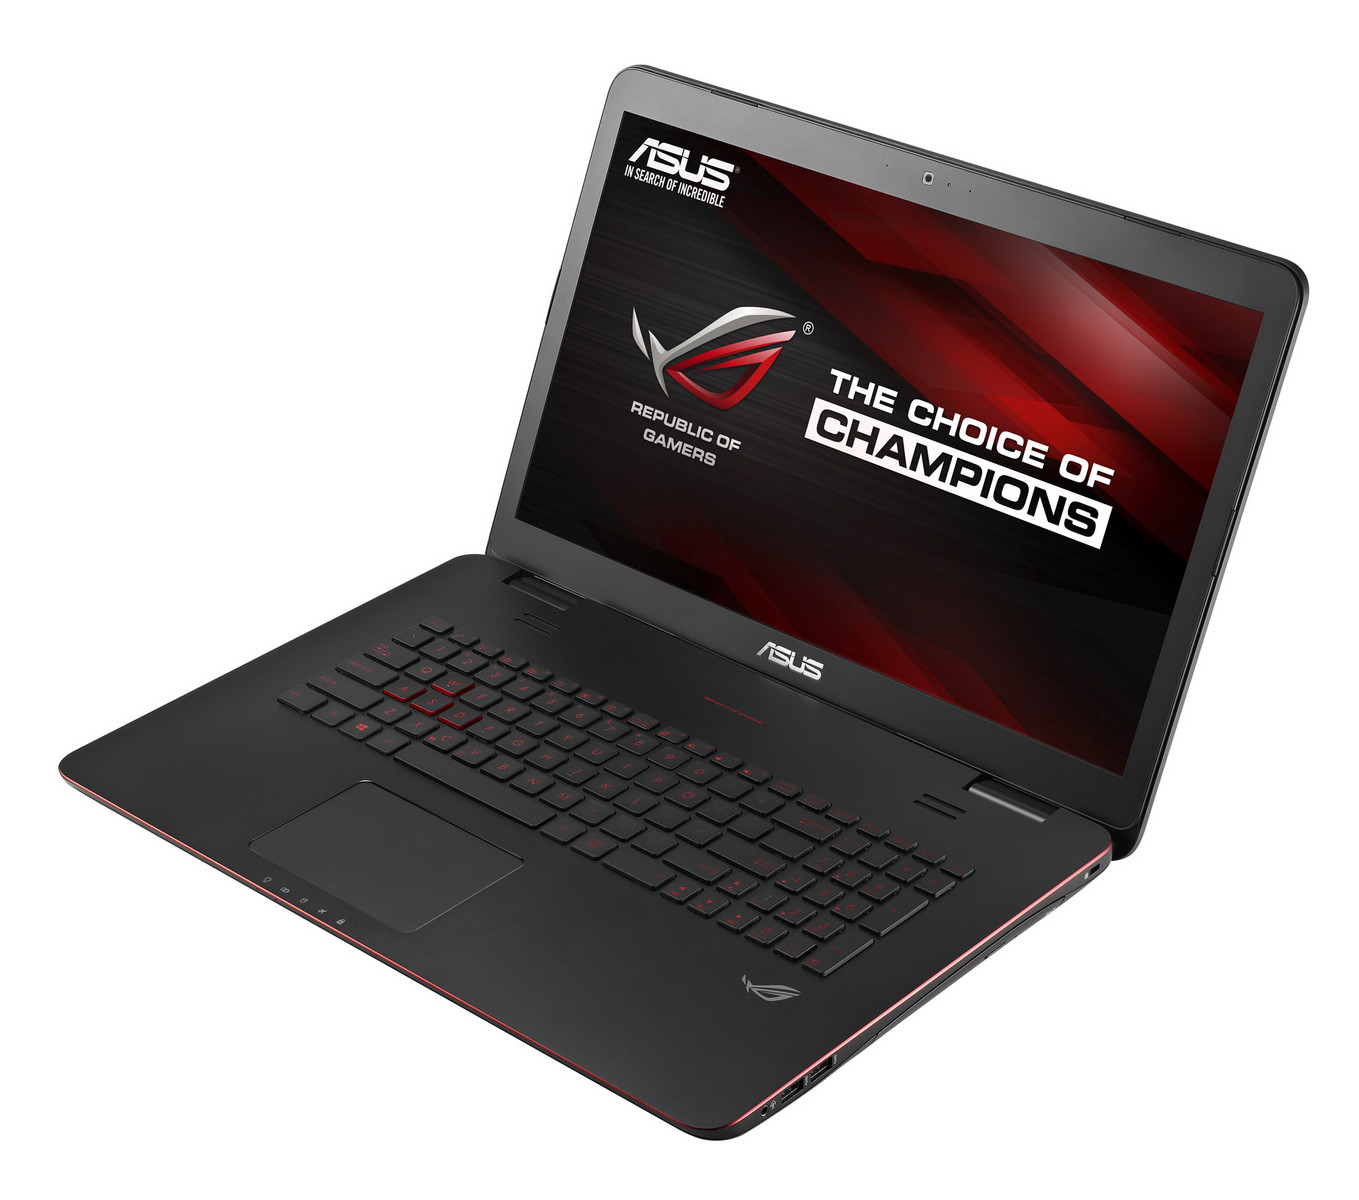 ASUS ROG G771JW ICE SOUND WINDOWS 8 X64 TREIBER